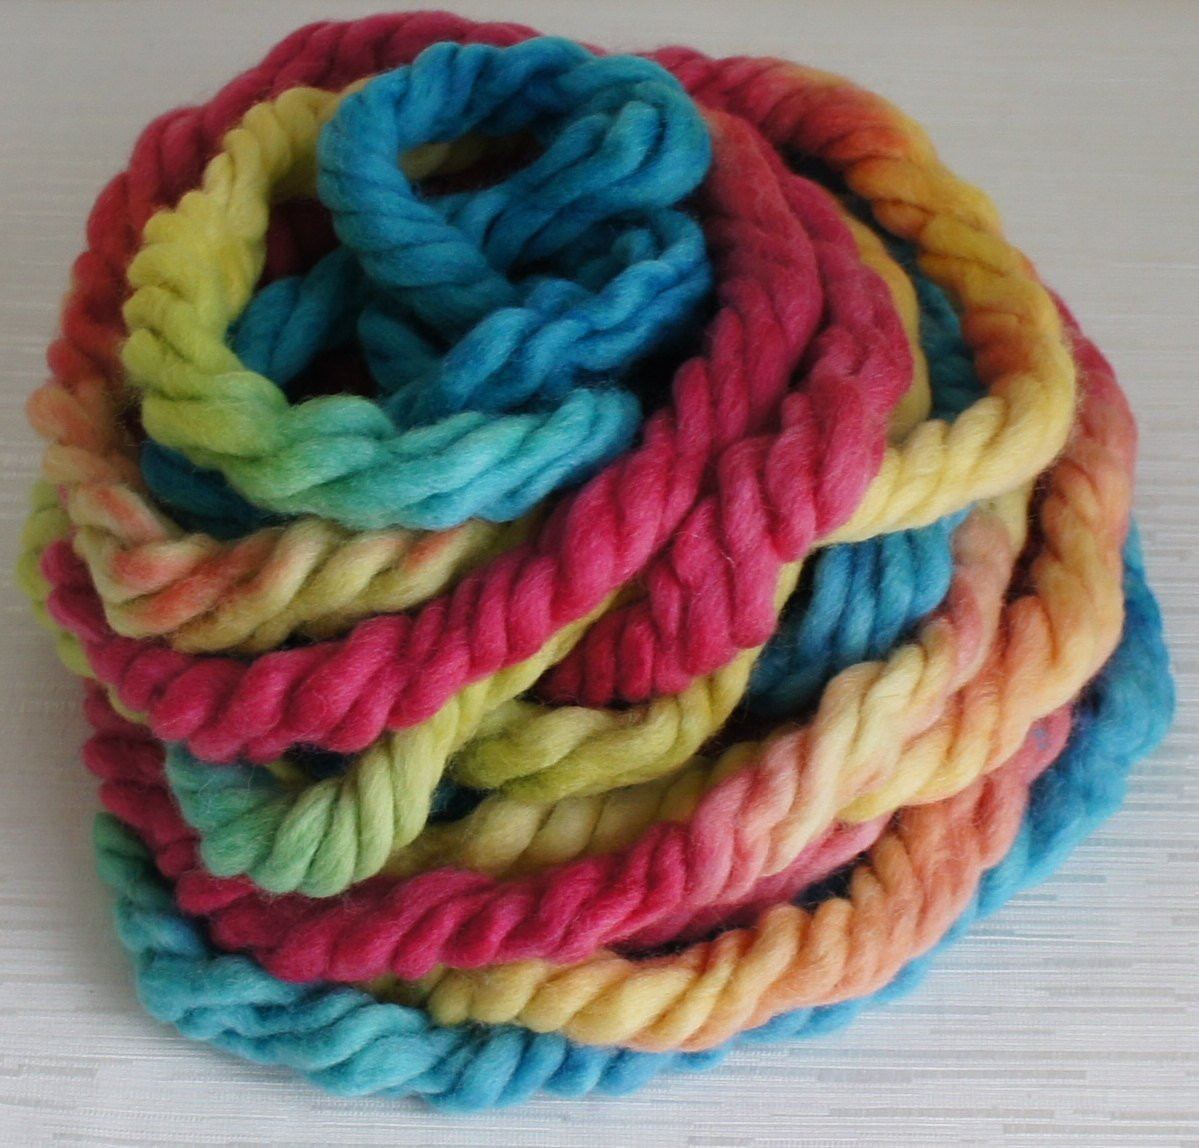 Crochet Stitches For Super Bulky Yarn wmperm for